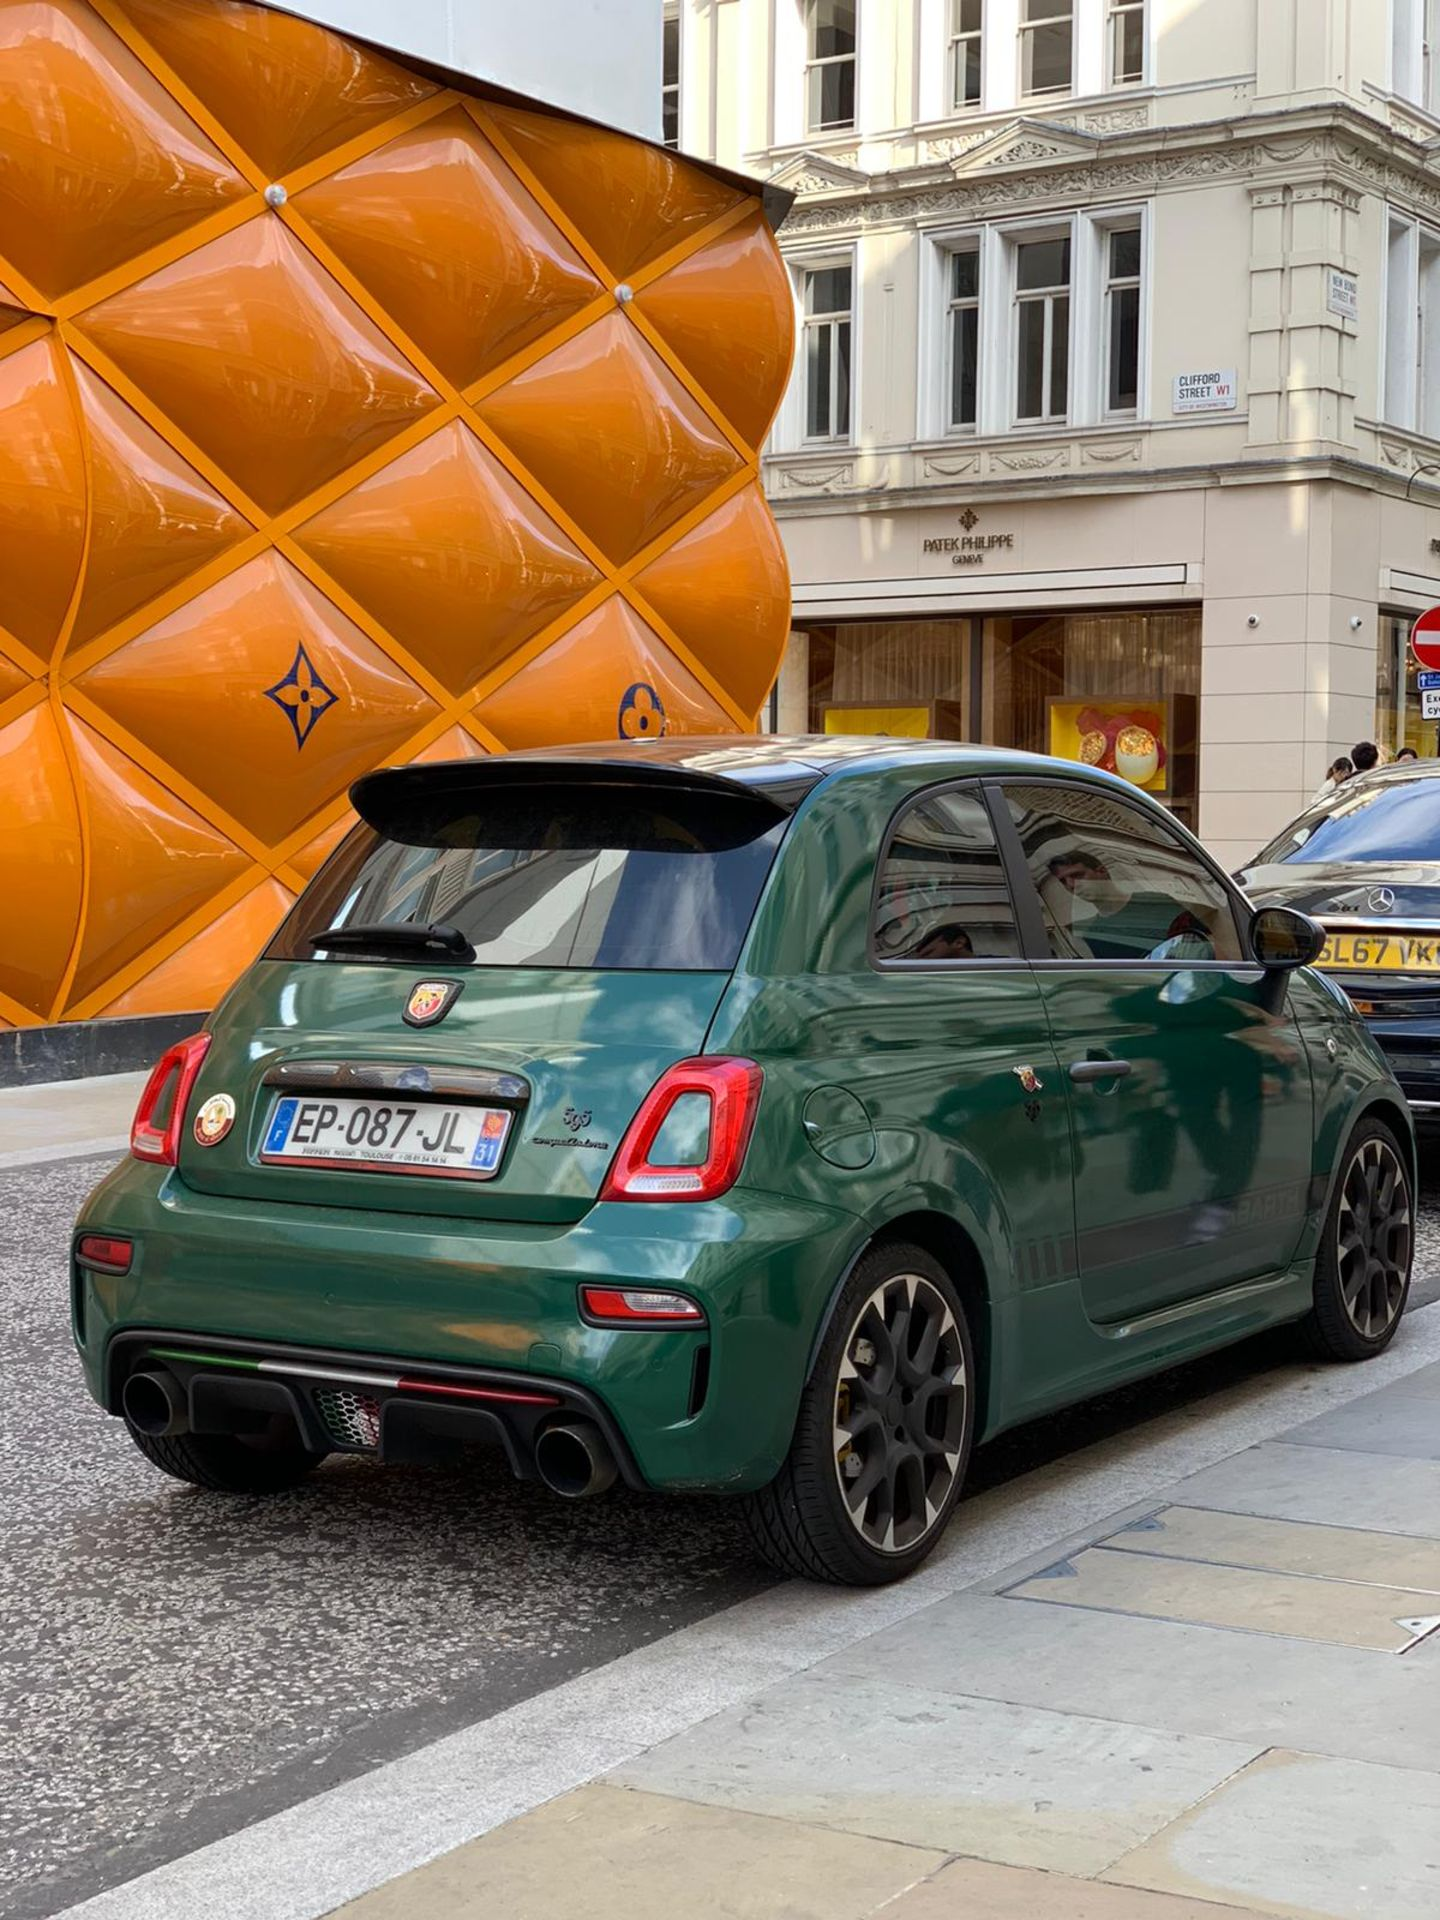 ABARTH 595 COMP 2016, 10,000 MILES NO ACCIDENTS, CUSTOM EXHAUST, WRAPPED DARK GREEN, FRENCH PLATES - Image 3 of 5